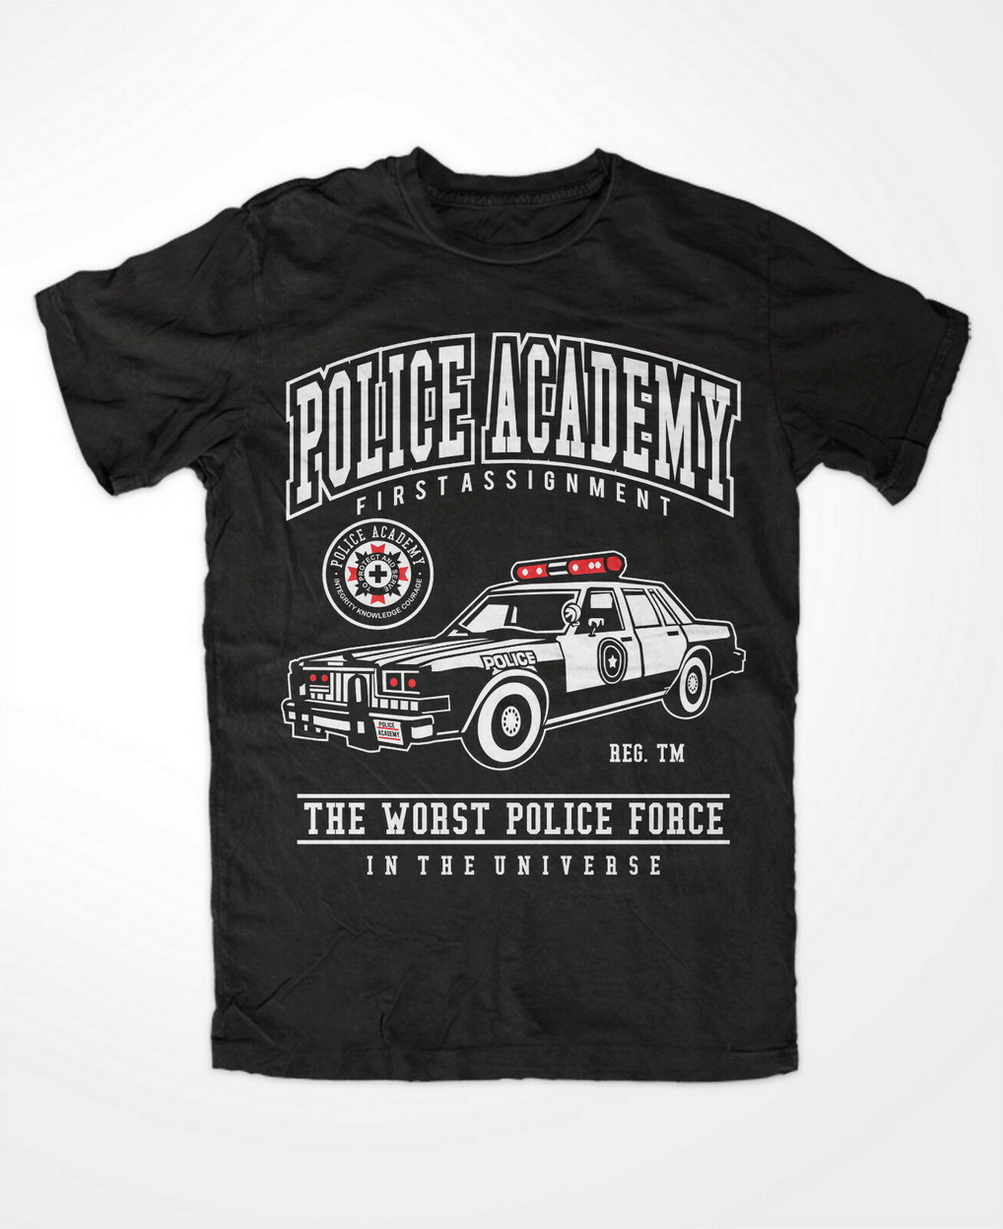 Police Academy Premium Tshirt 80`s Lassard Retro Cop Comedy Movie Hightower TEE Shirt New Unisex Funny image